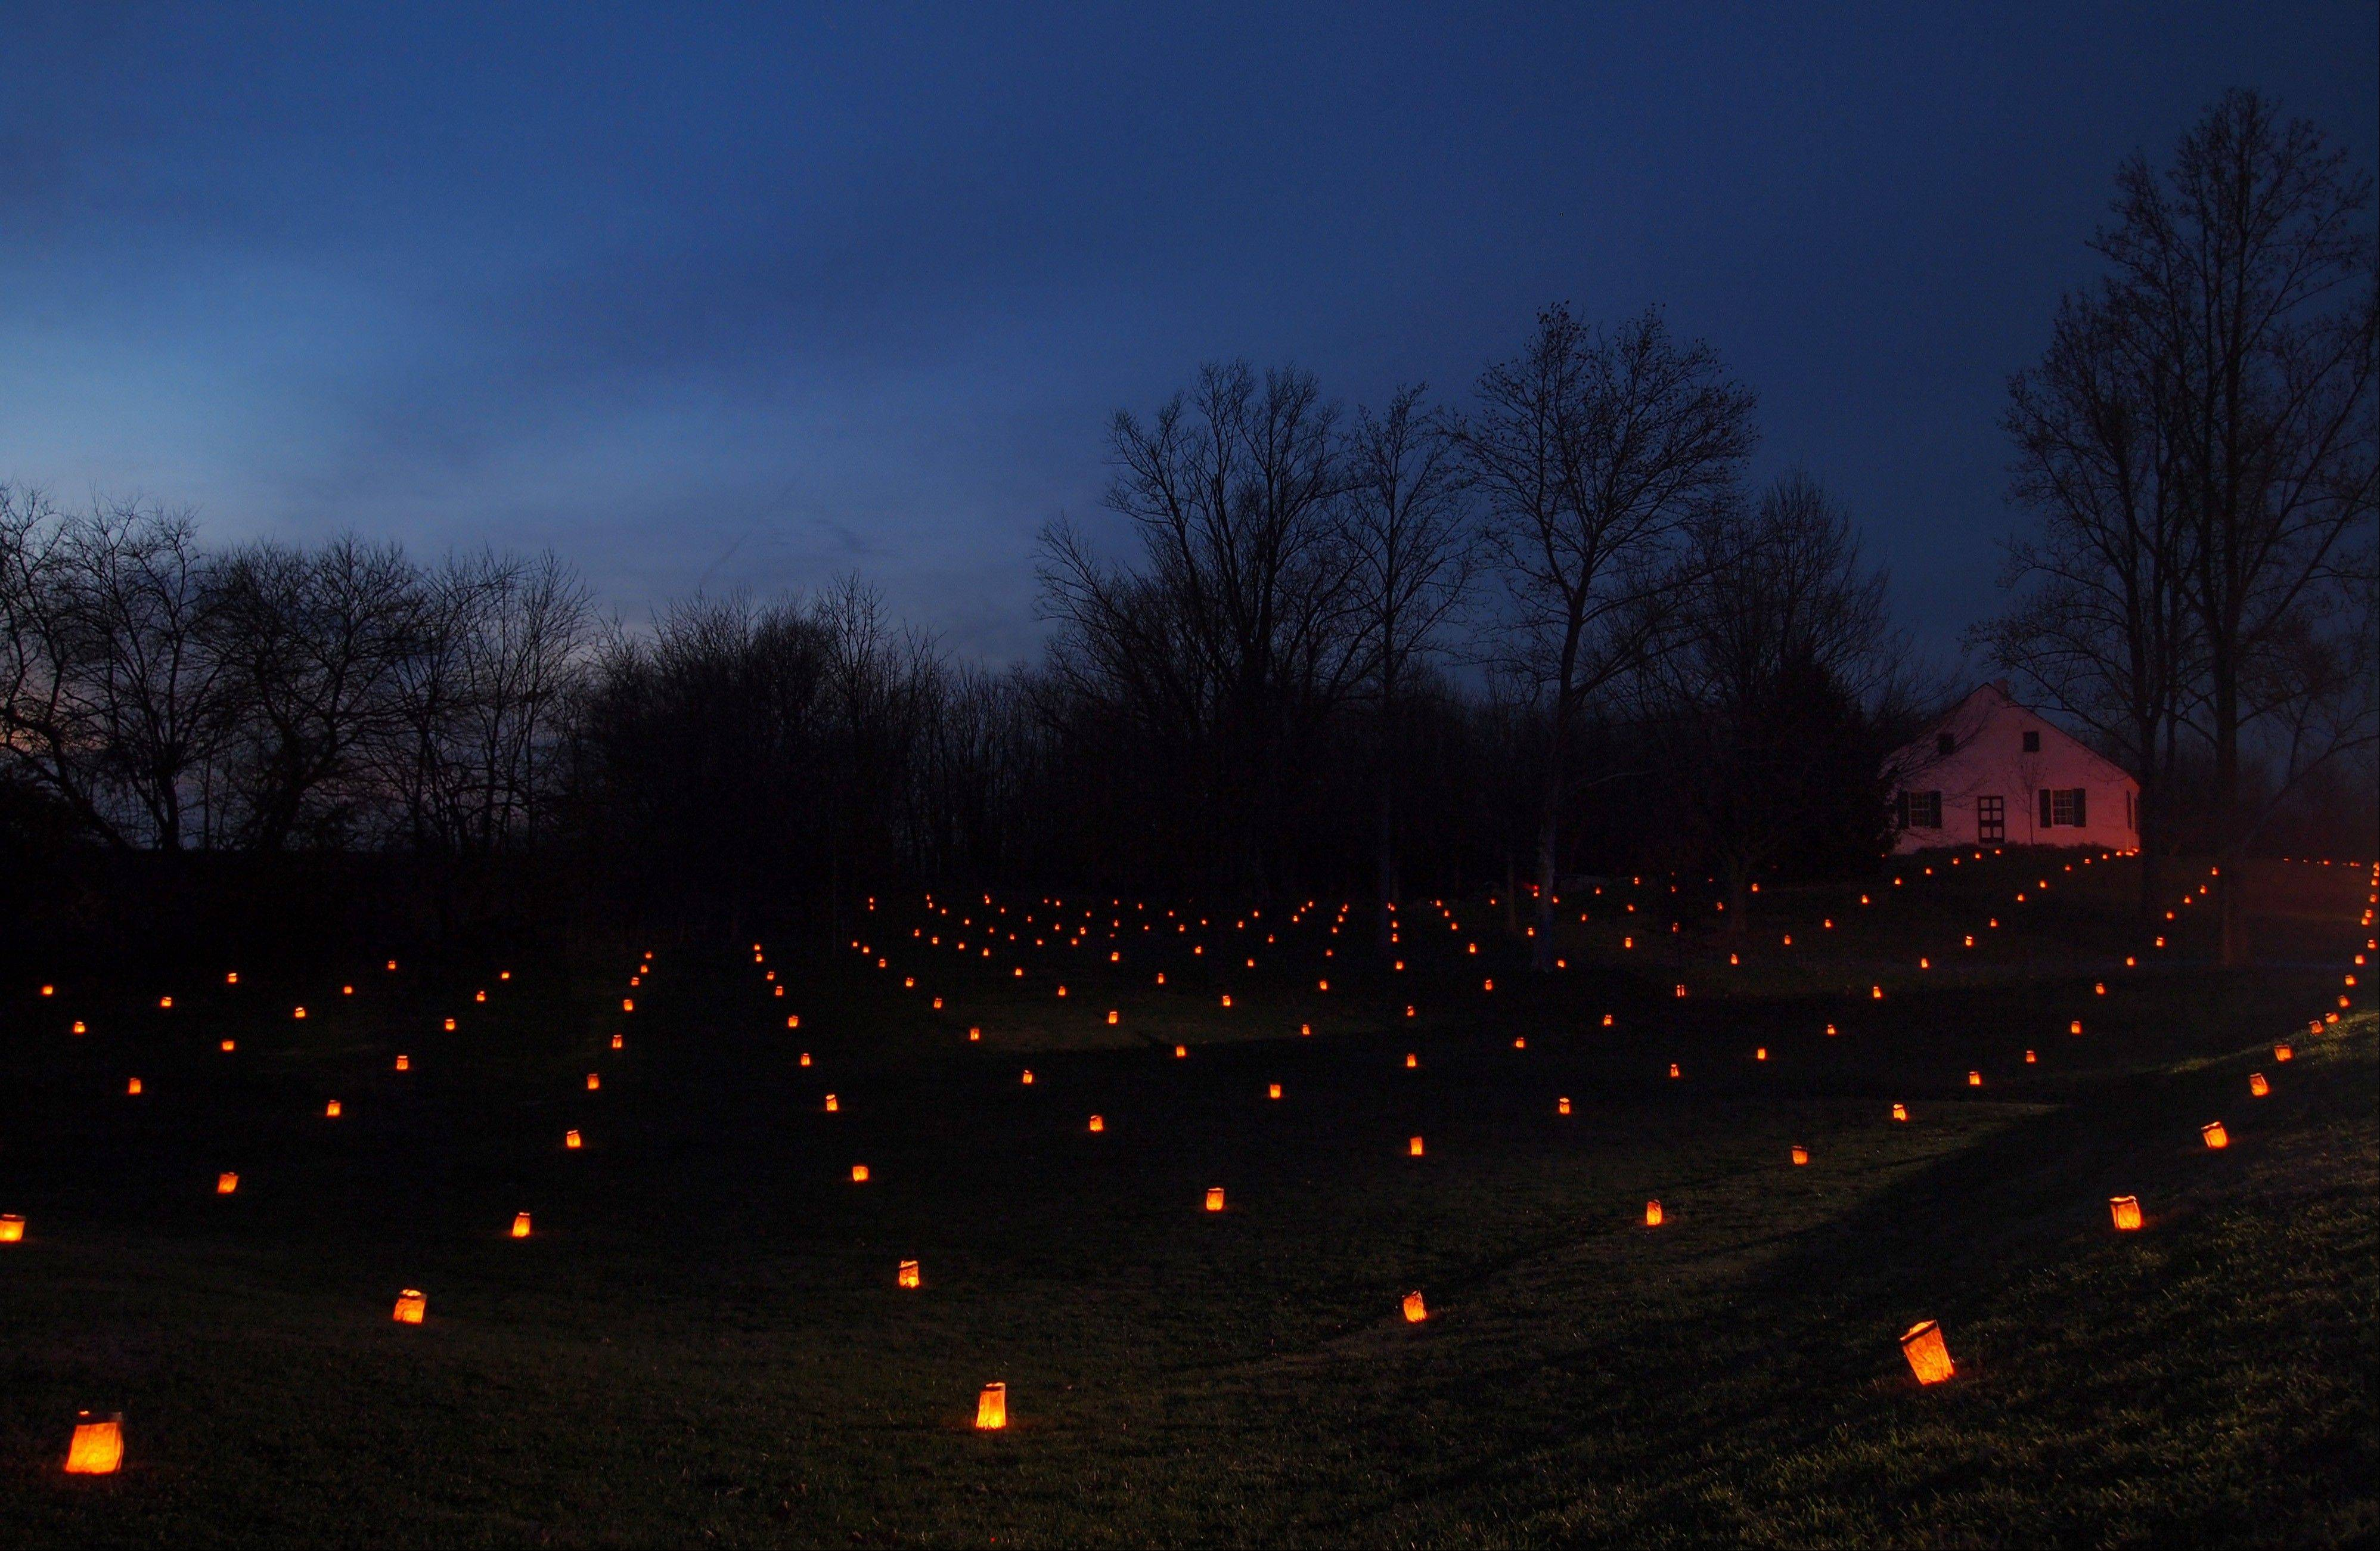 This Dec. 3, 2011 photo provided by Dave Maher shows some of the 23,110 luminaries placed throughout the northern portion of the Antietam battlefield to commemmorate each of the casualties near Sharpsburg, Md. The battle marked a crucial pivot point in the war.